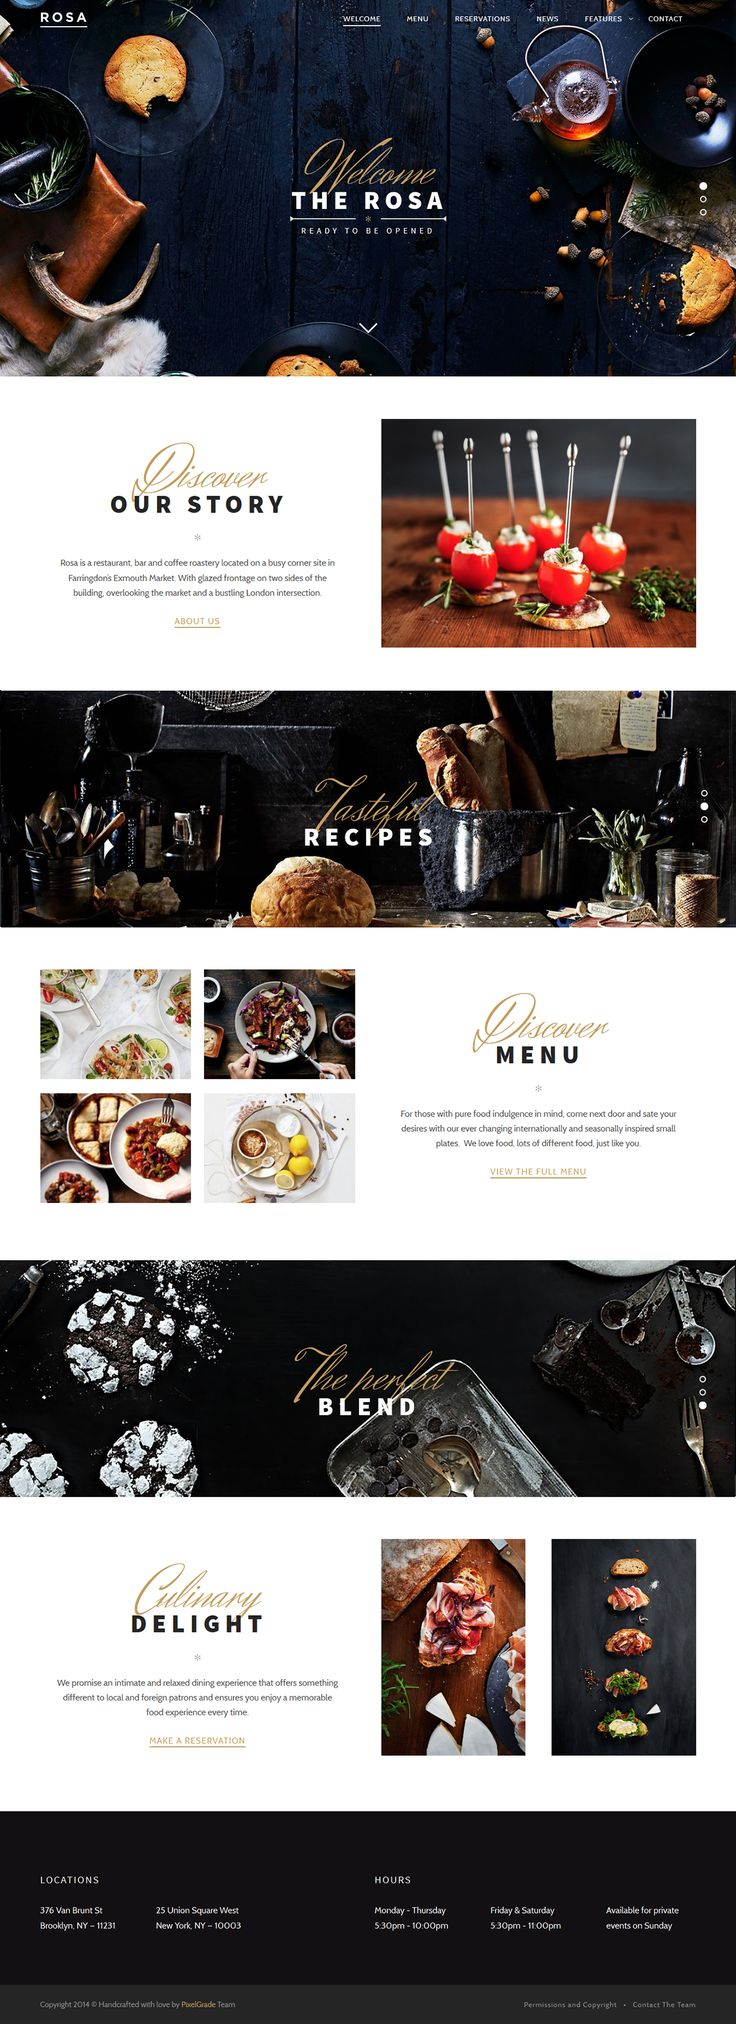 ROSA is an enchanting and easy-to-use parallax Restaurant WordPress theme that allows you to tell your story in a dynamic, narrative and enjoyable way, making it perfect for restaurants, bakeries, bars or coffee shops.